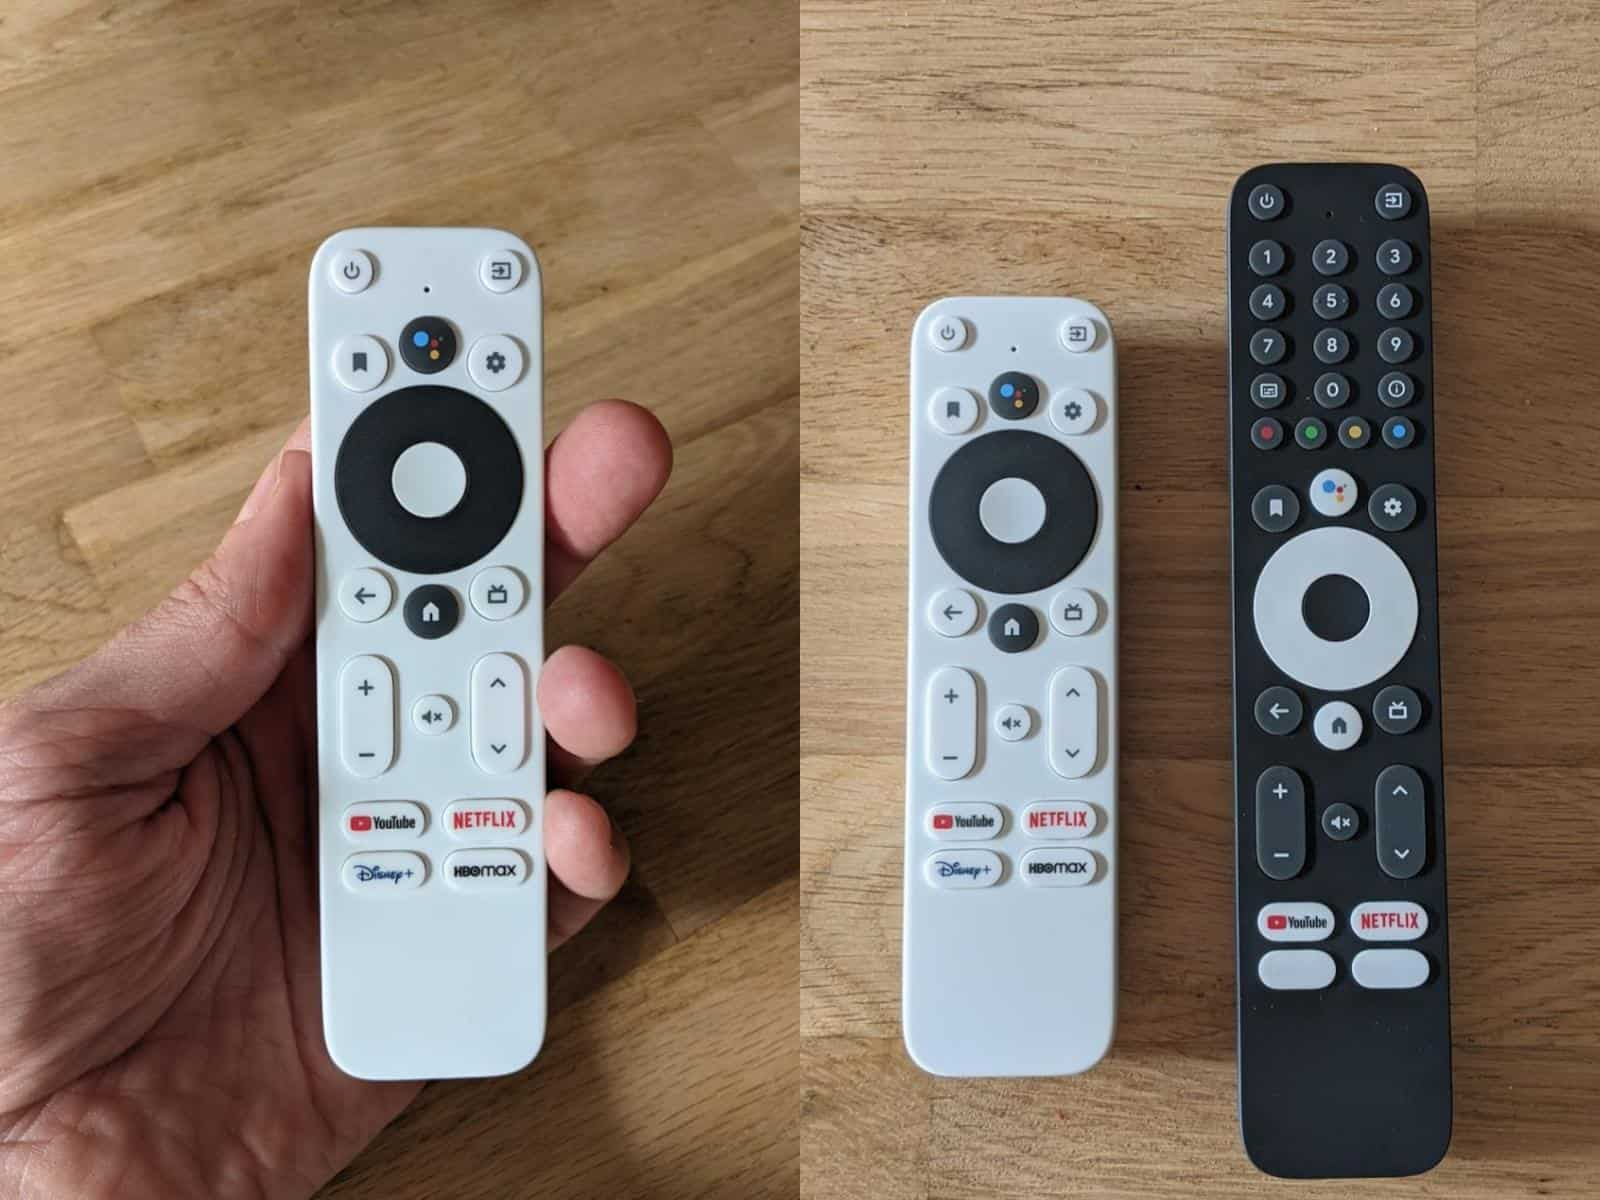 02 Google TV remotes reference designs IRL from Android TV Guide Twitter